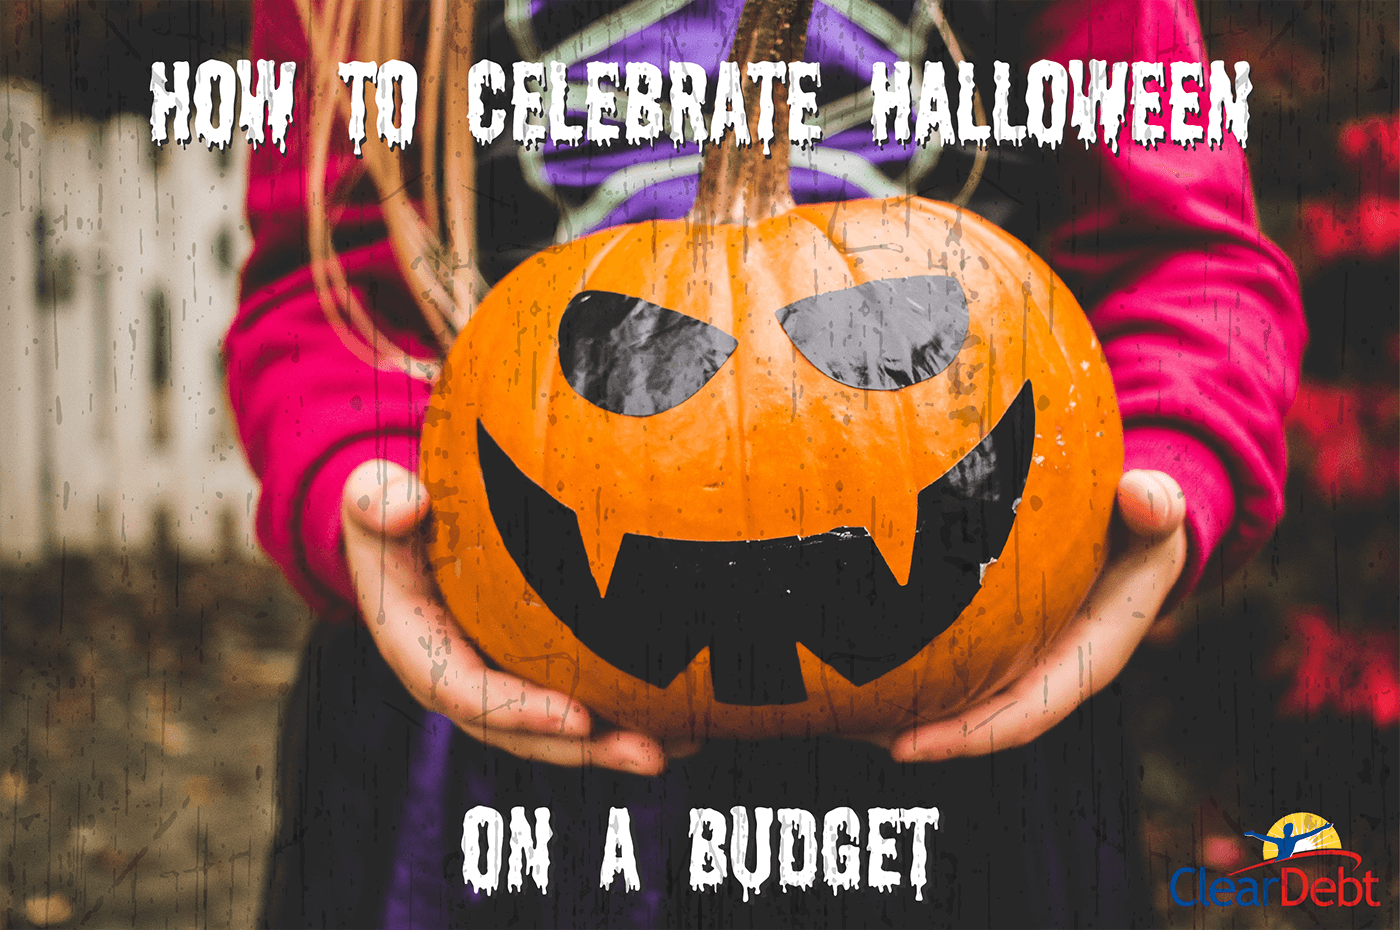 how to celebrate halloween on a budget - cleardebt